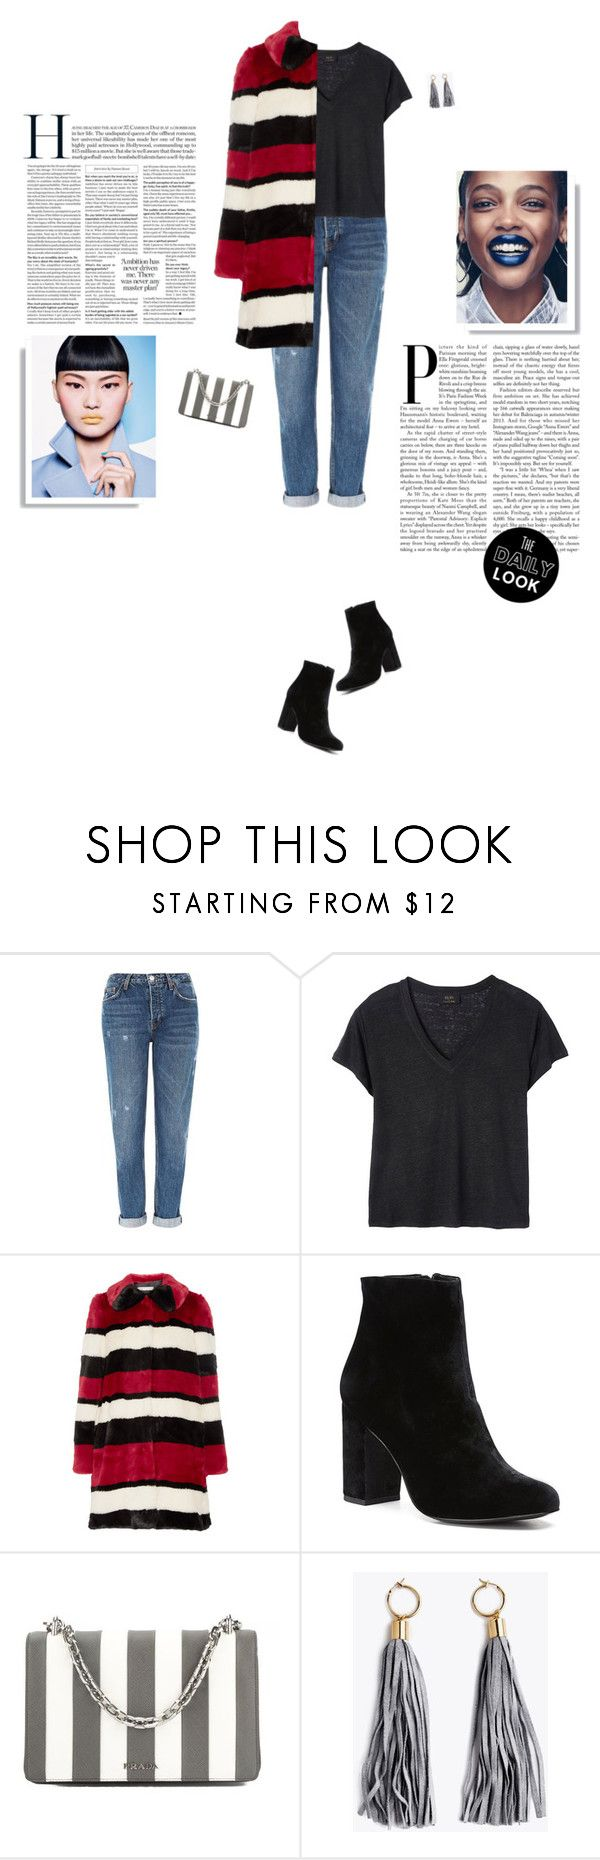 """""""Bold Stripes Trend"""" by elliejd ❤ liked on Polyvore featuring Topshop, Deby Debo, Alice + Olivia, Witchery, Prada and BoldStripes"""